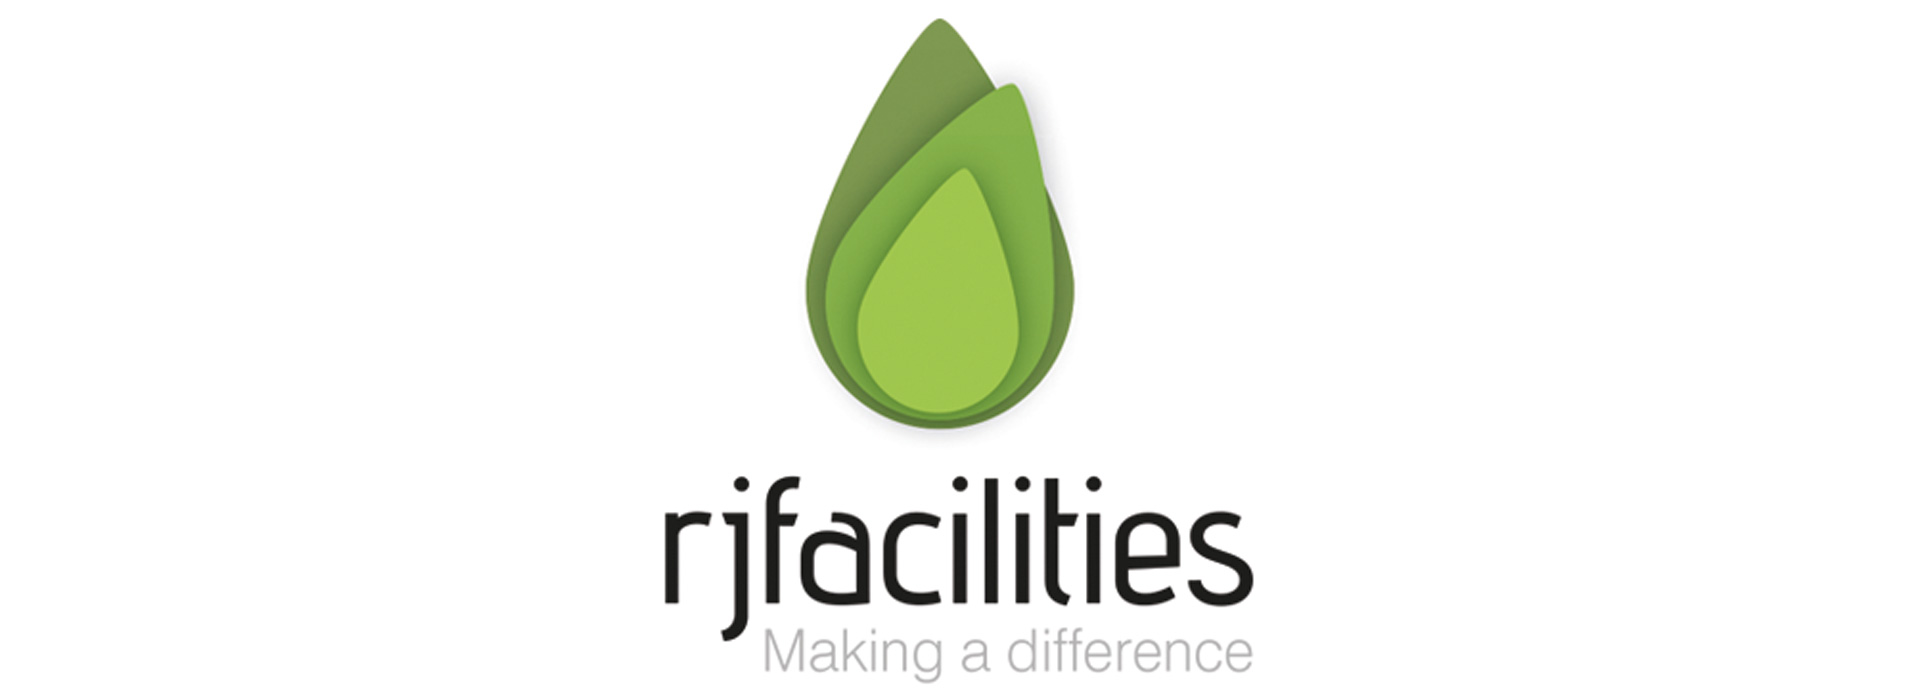 RJ Facilities: Making a difference